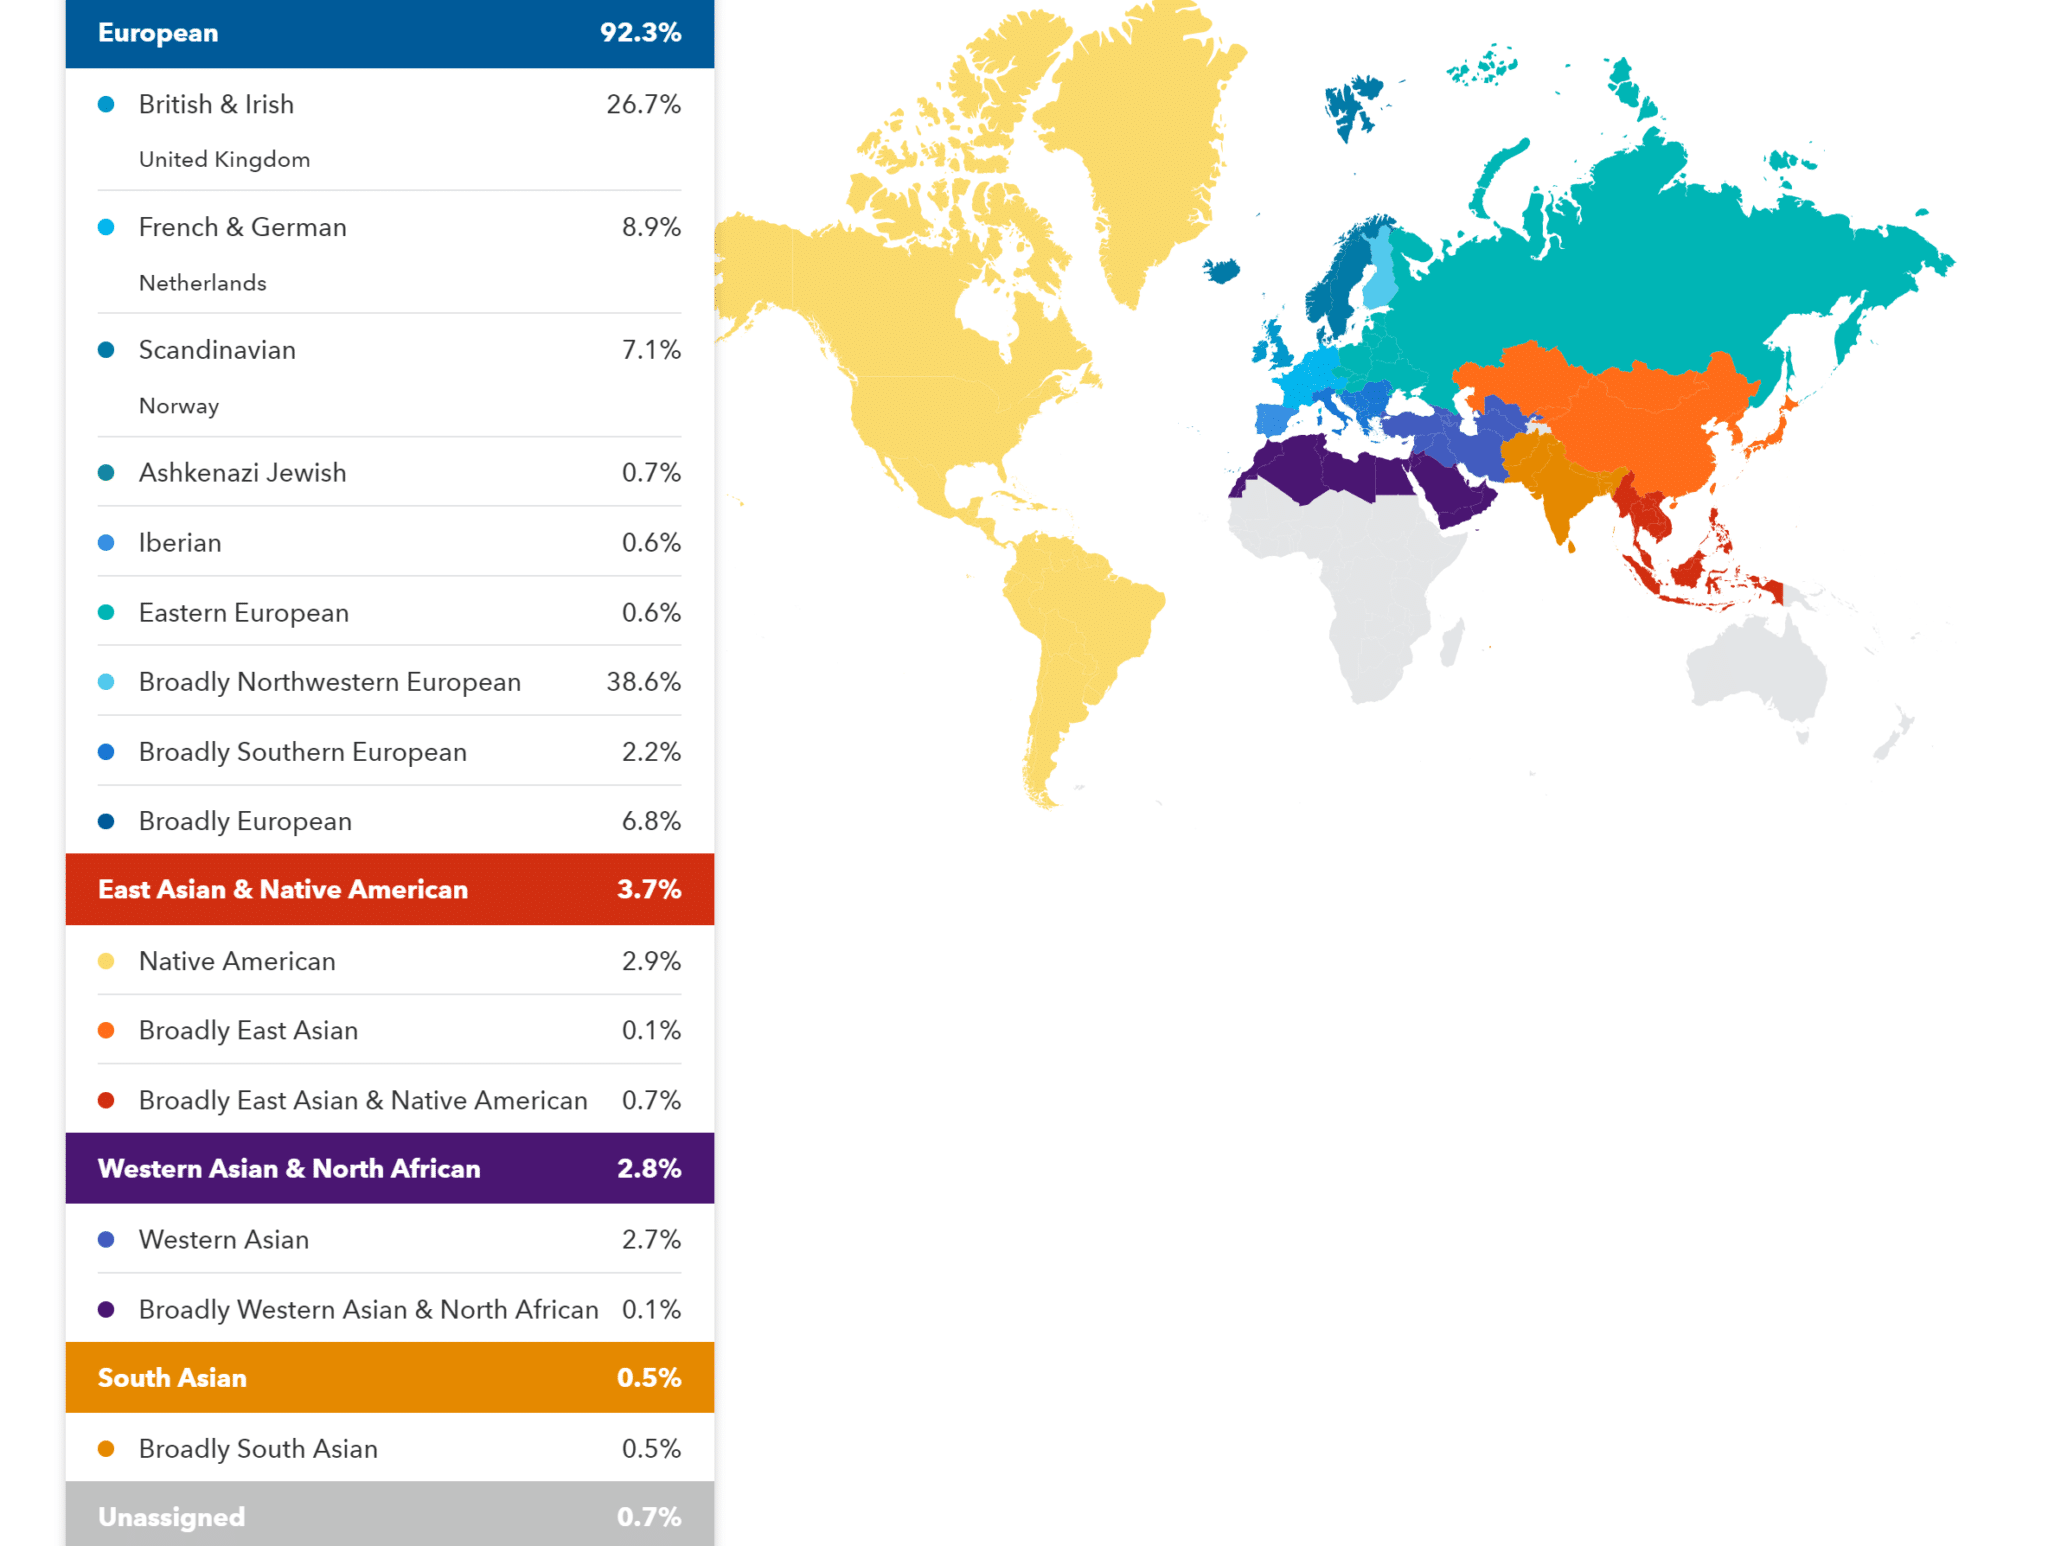 23andMe Ancestry Composition Report